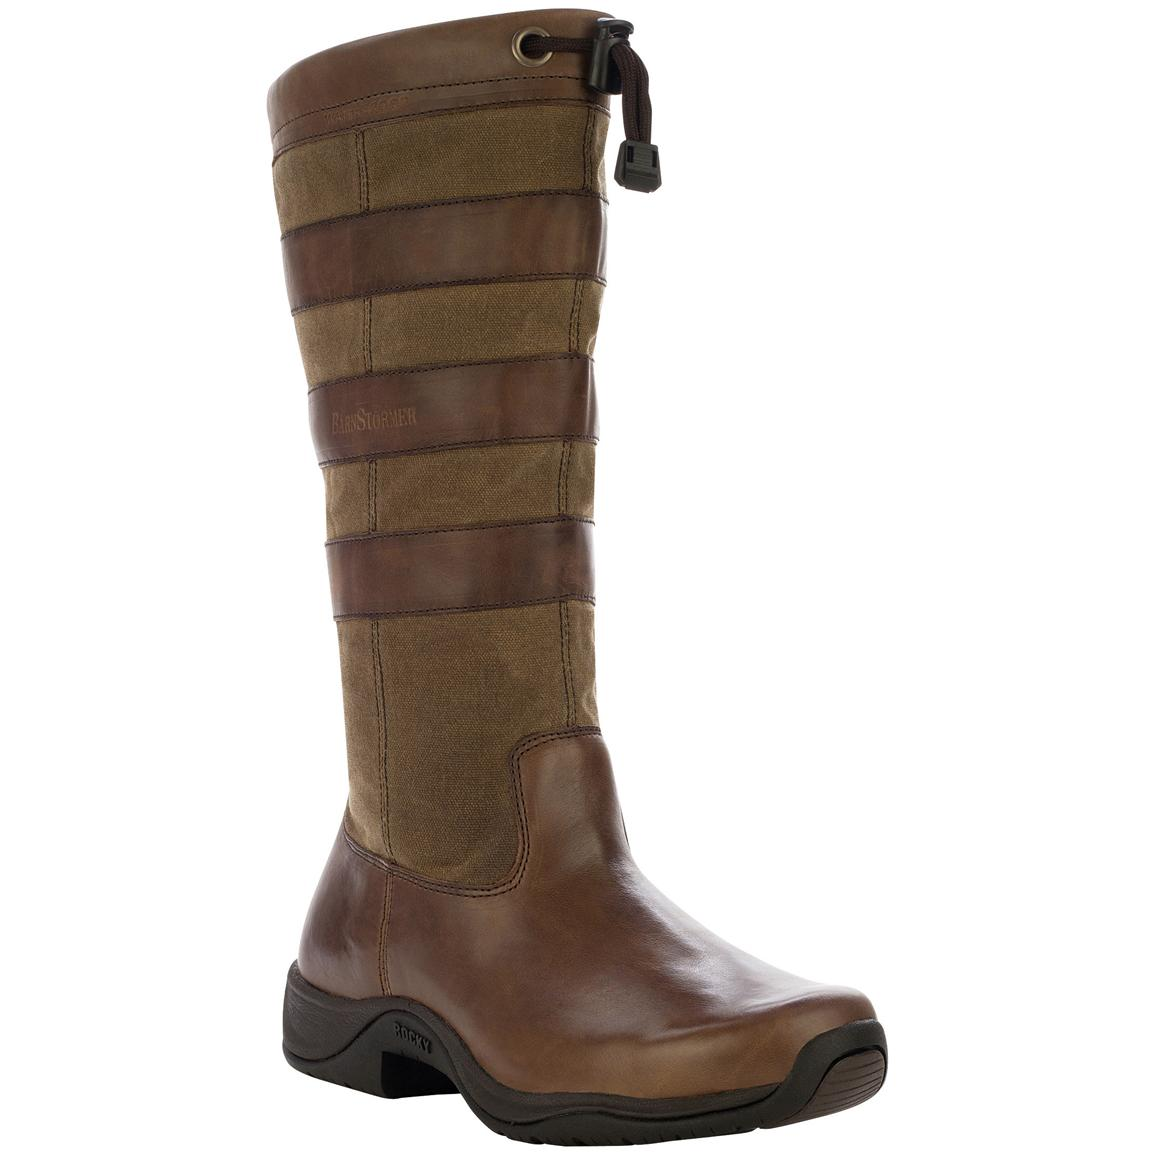 Women's Rocky® Barnstormer 14 inch Waterproof Pull-on Strap Boots, Chocolate / Khaki